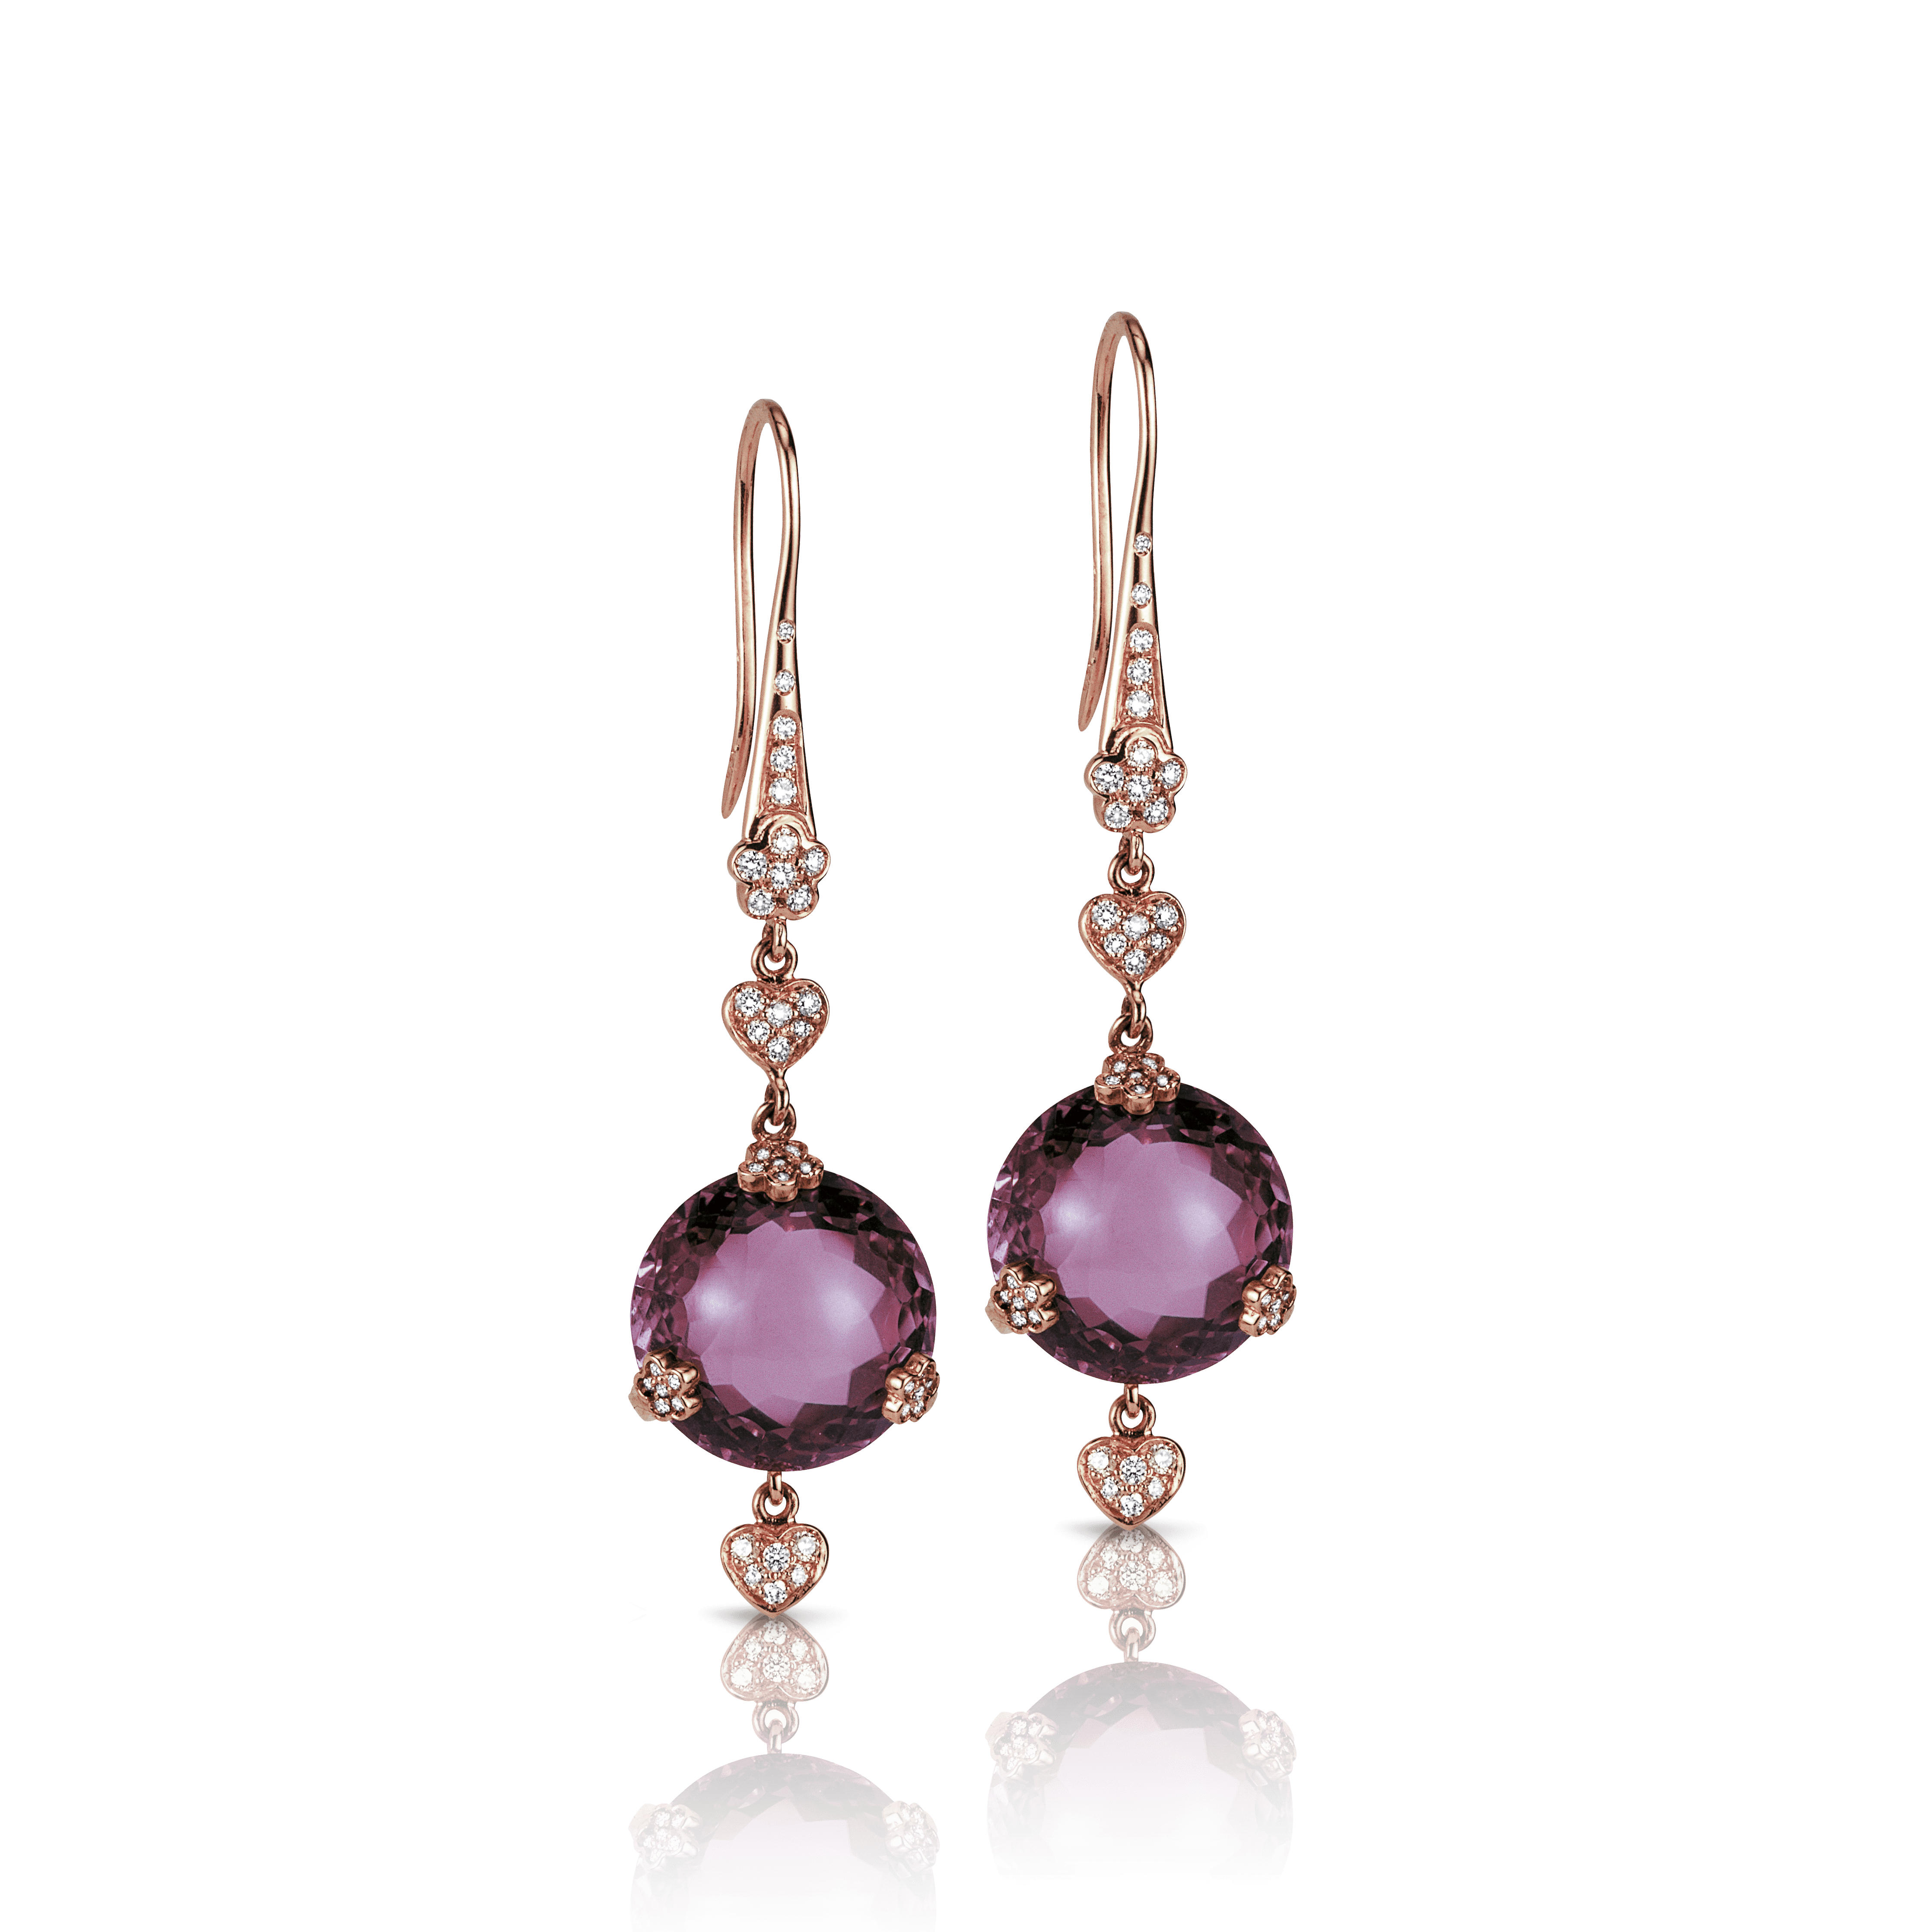 18k Rose Gold Sissi Earrings with Amethyst and Diamonds